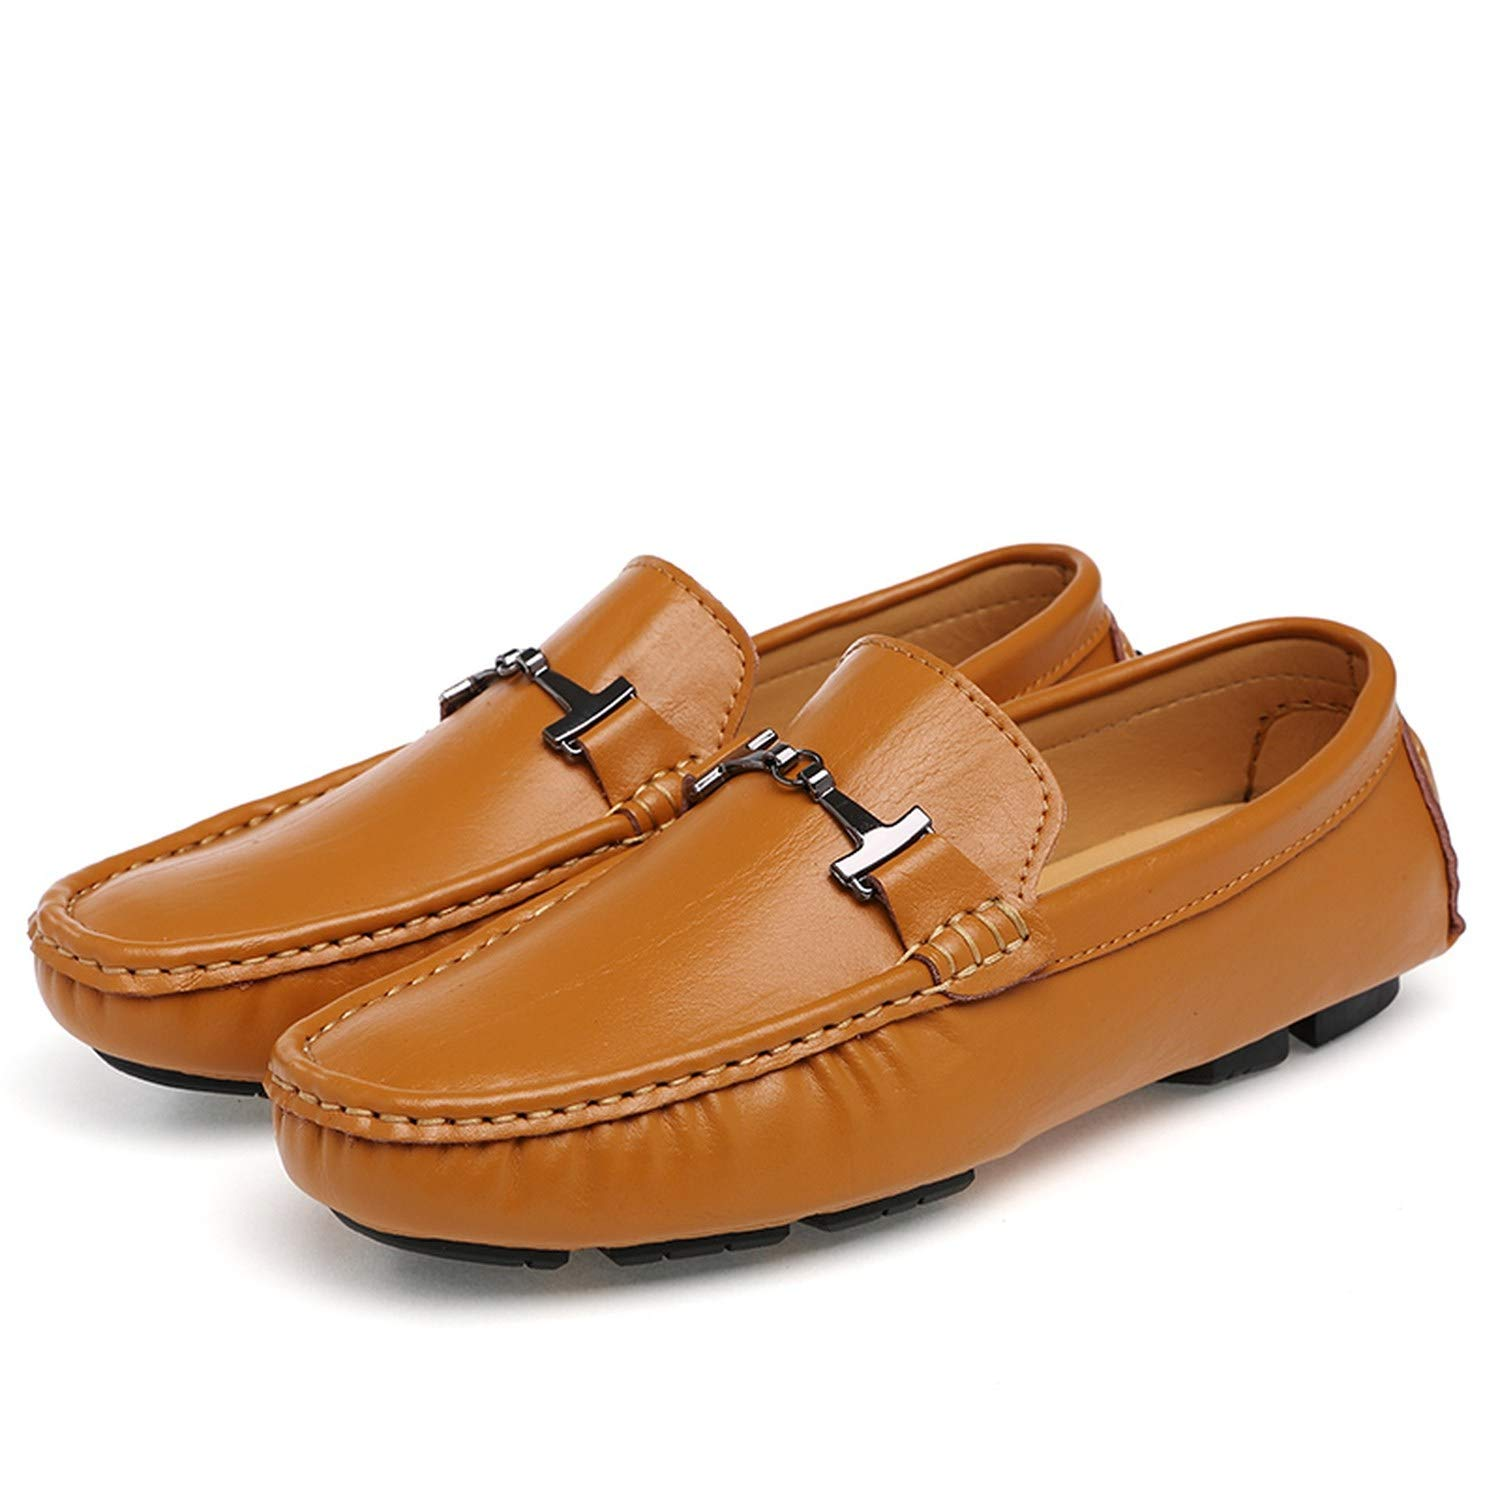 crazy-shop Men Leather Casual Shoes Loafers Mens Moccasins Chaussures Male Breathable Formal Driving Shoes,Brown,12.5